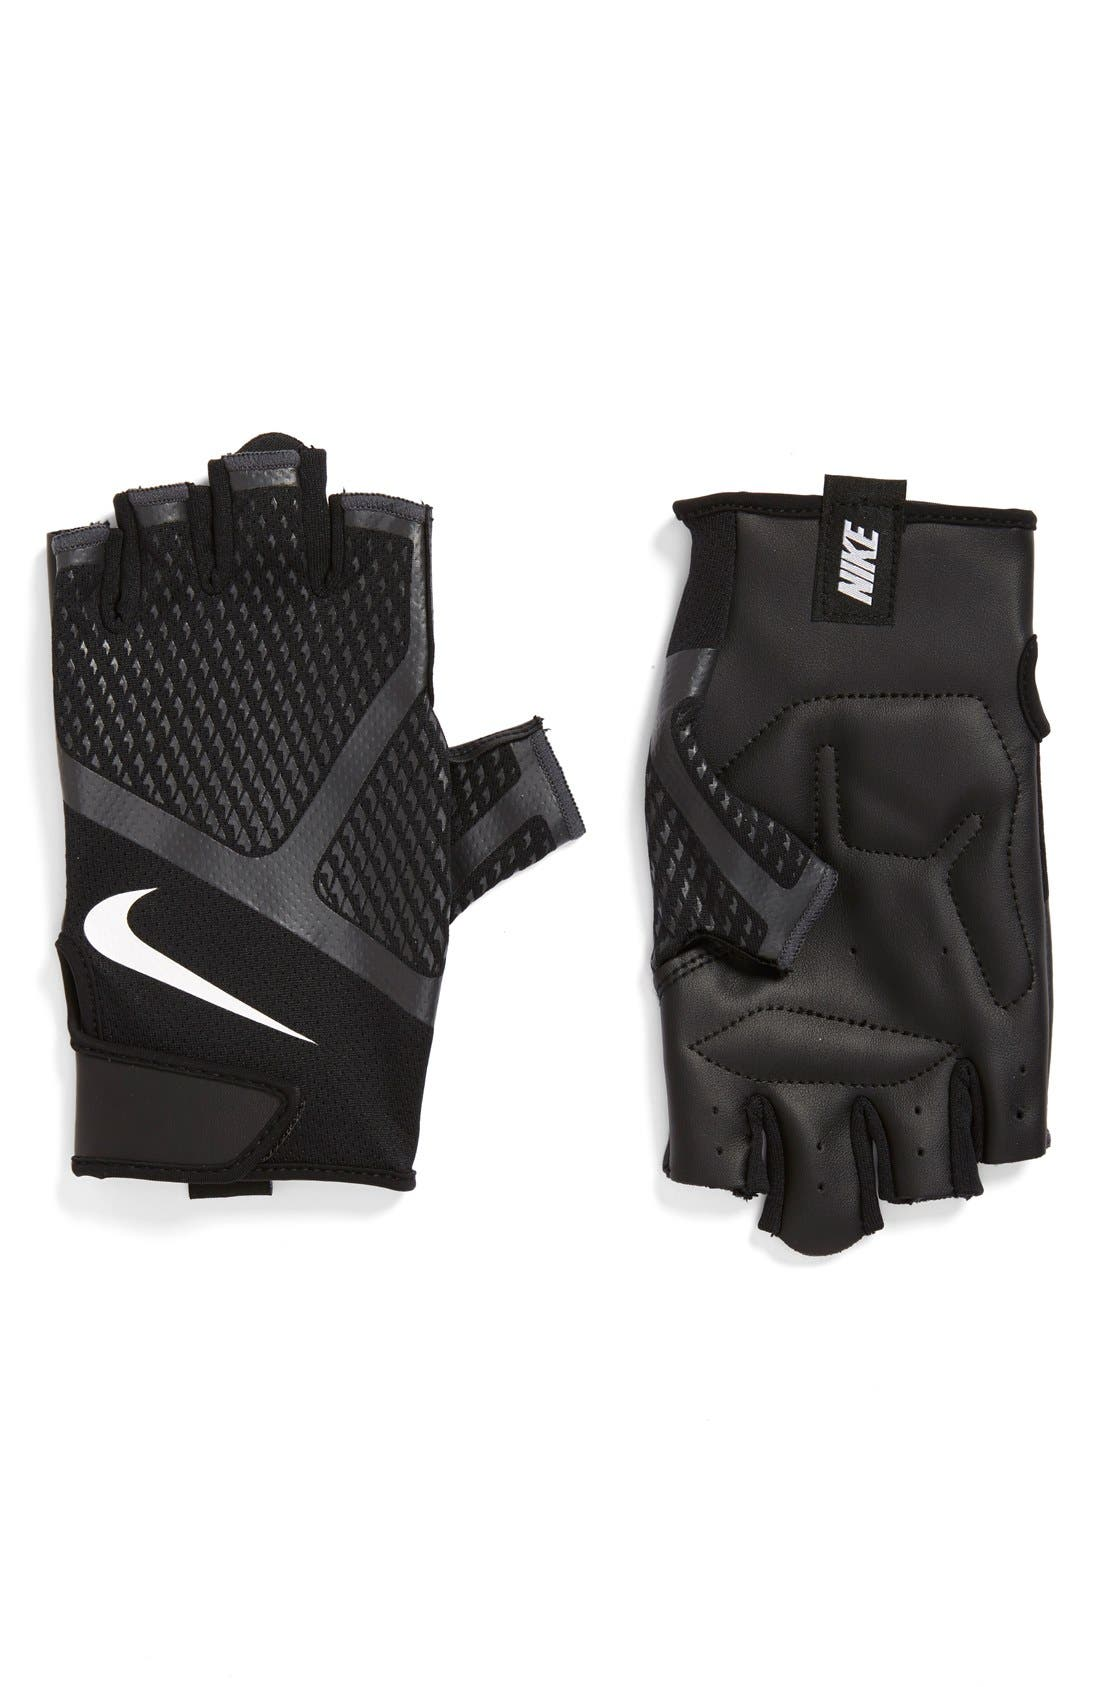 'Renegade' Fingerless Padded Training Gloves,                         Main,                         color, 001